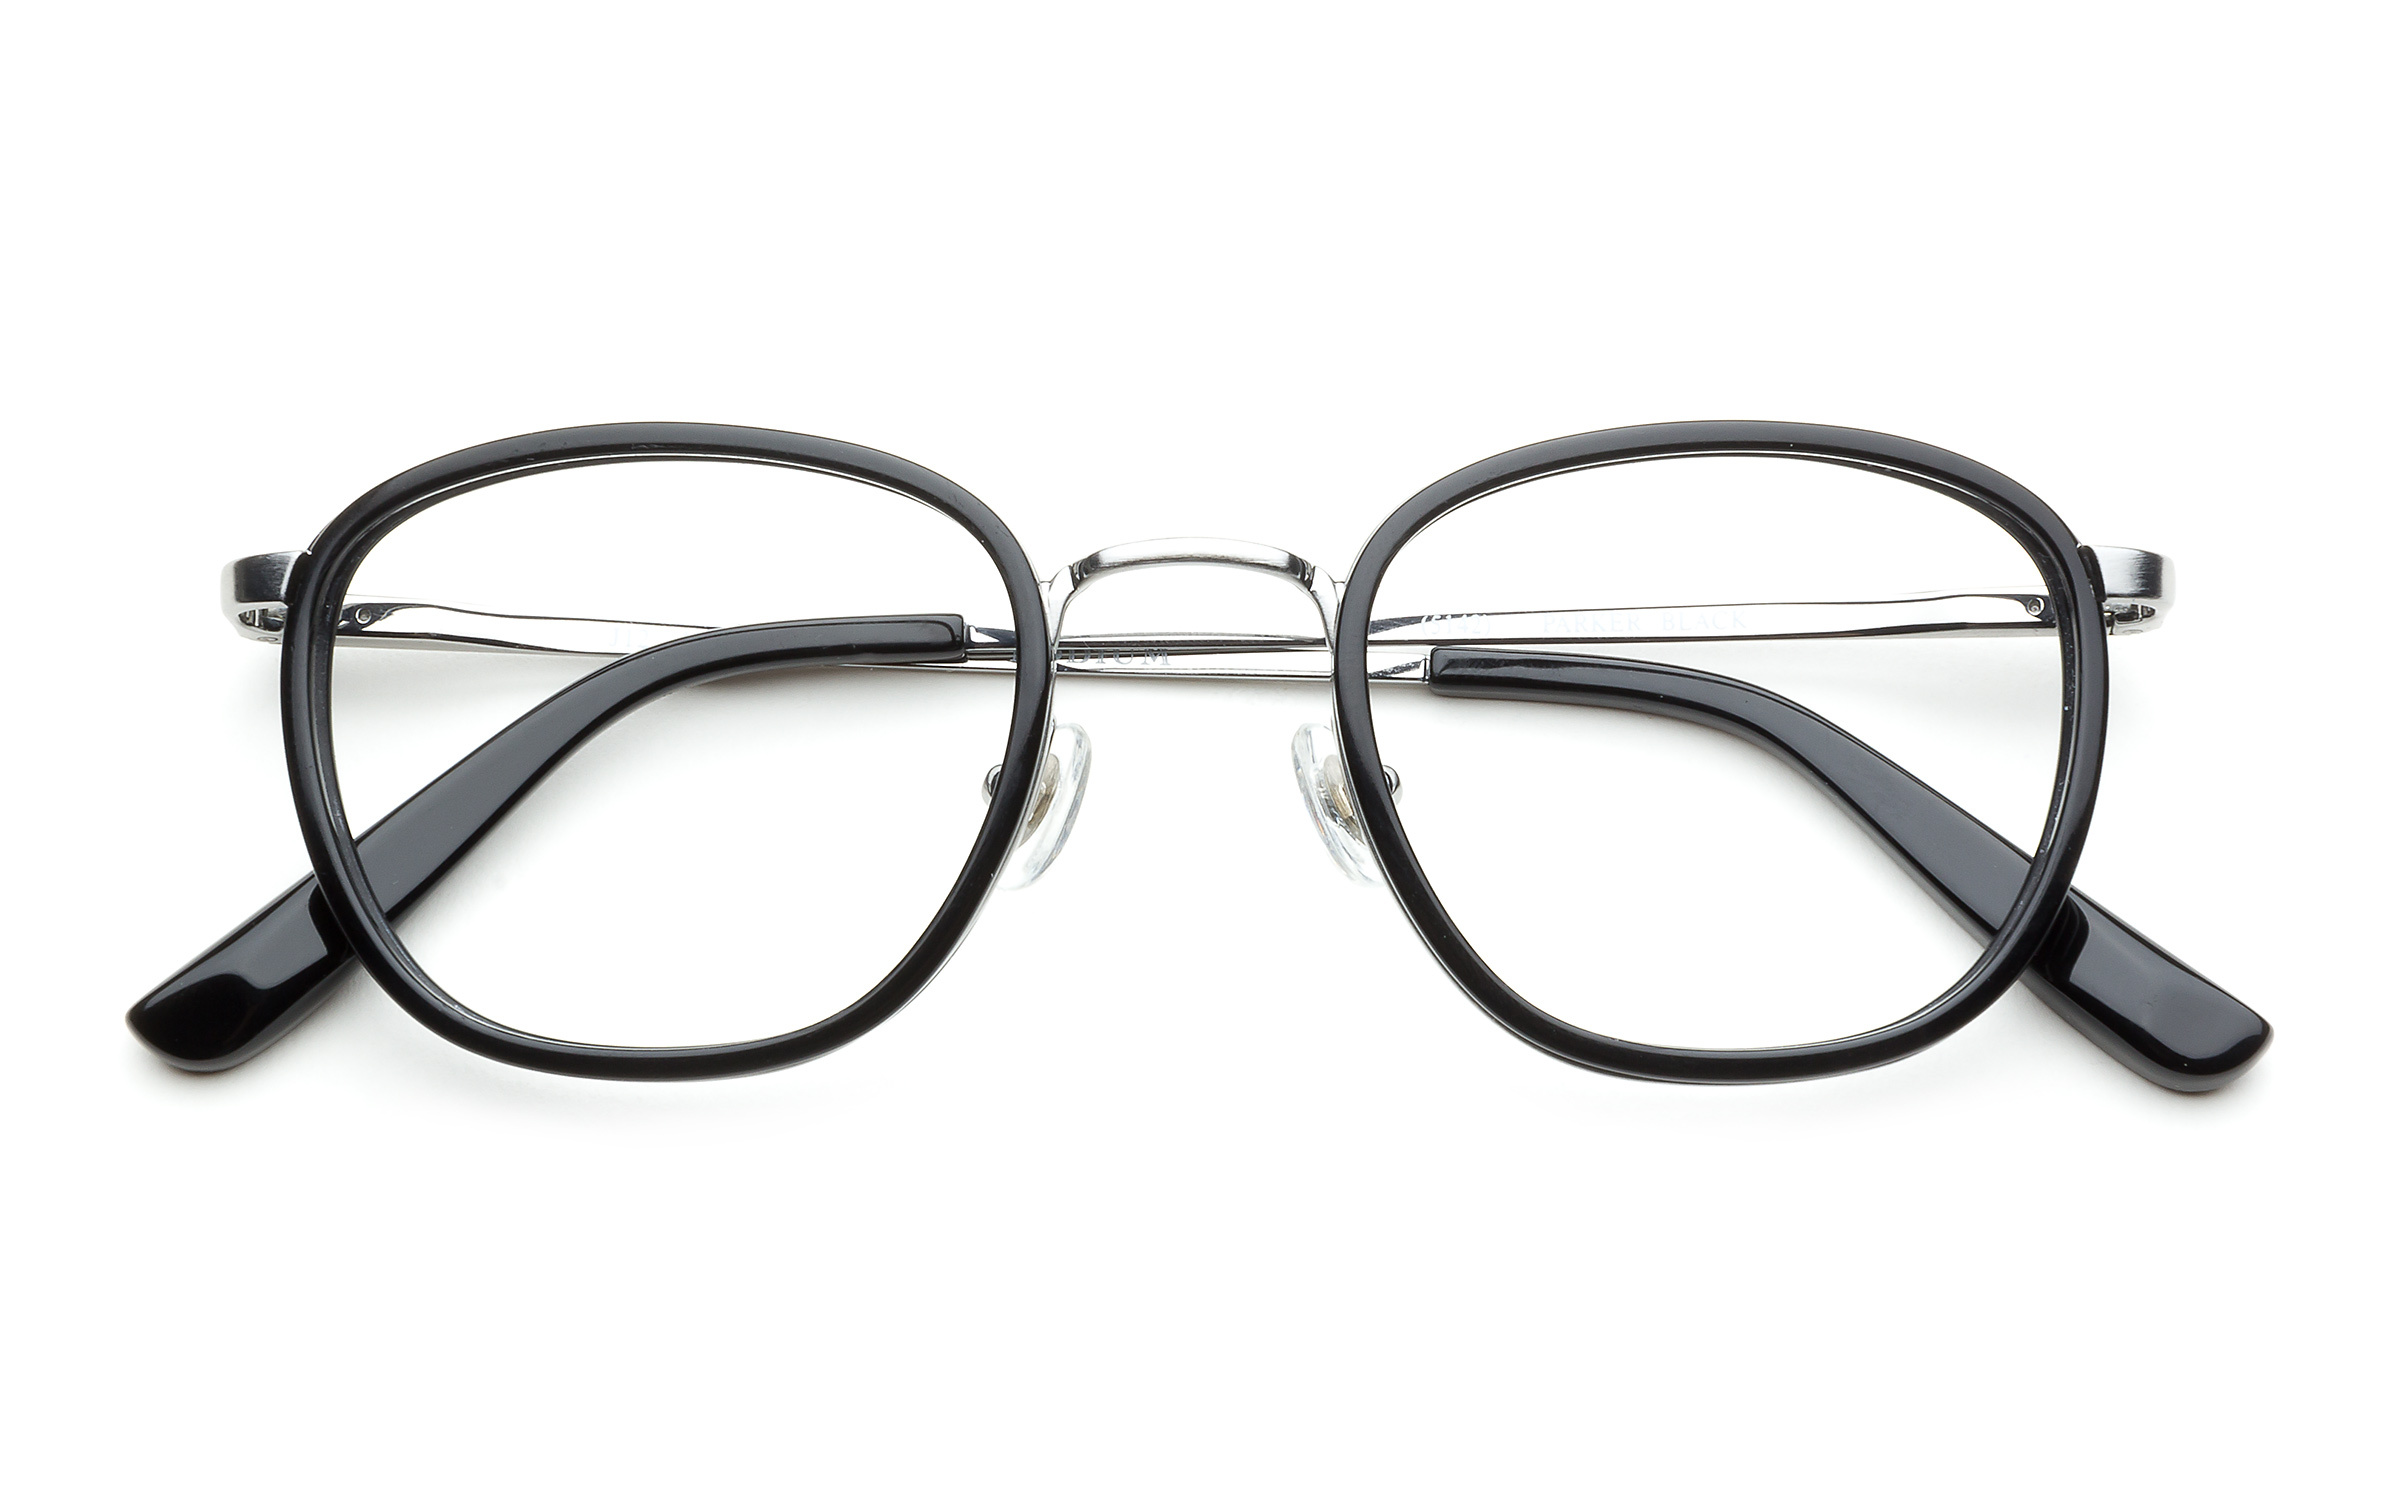 online lenses and frames  Prescription Glasses Online - Complete Eyeglasses from $35